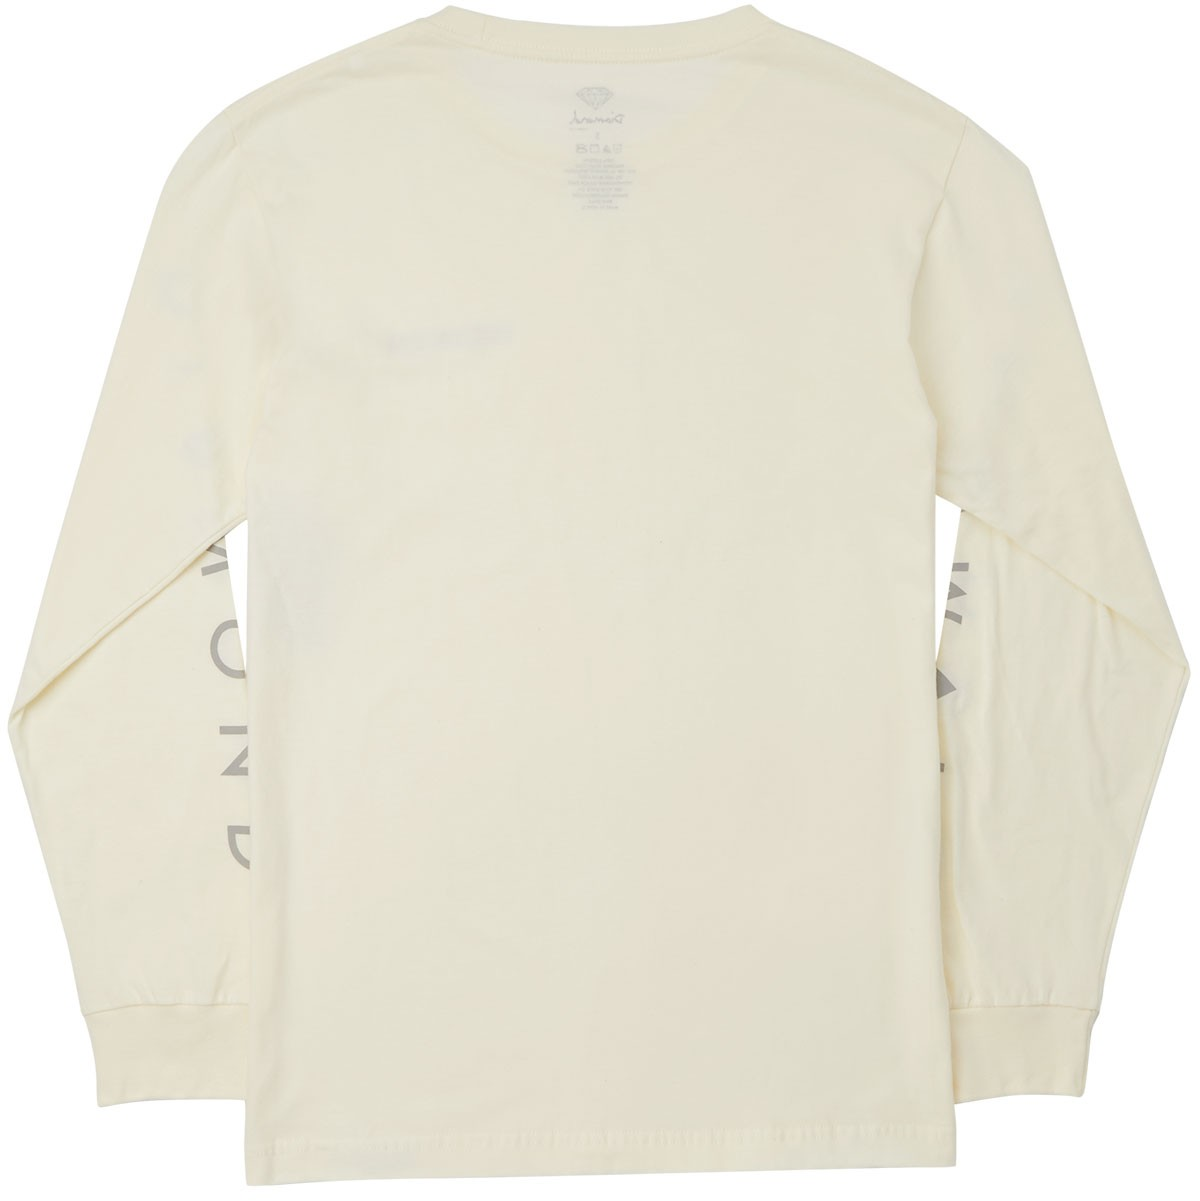 Supply Co. Marquise Long Sleeve T-Shirt - Cream